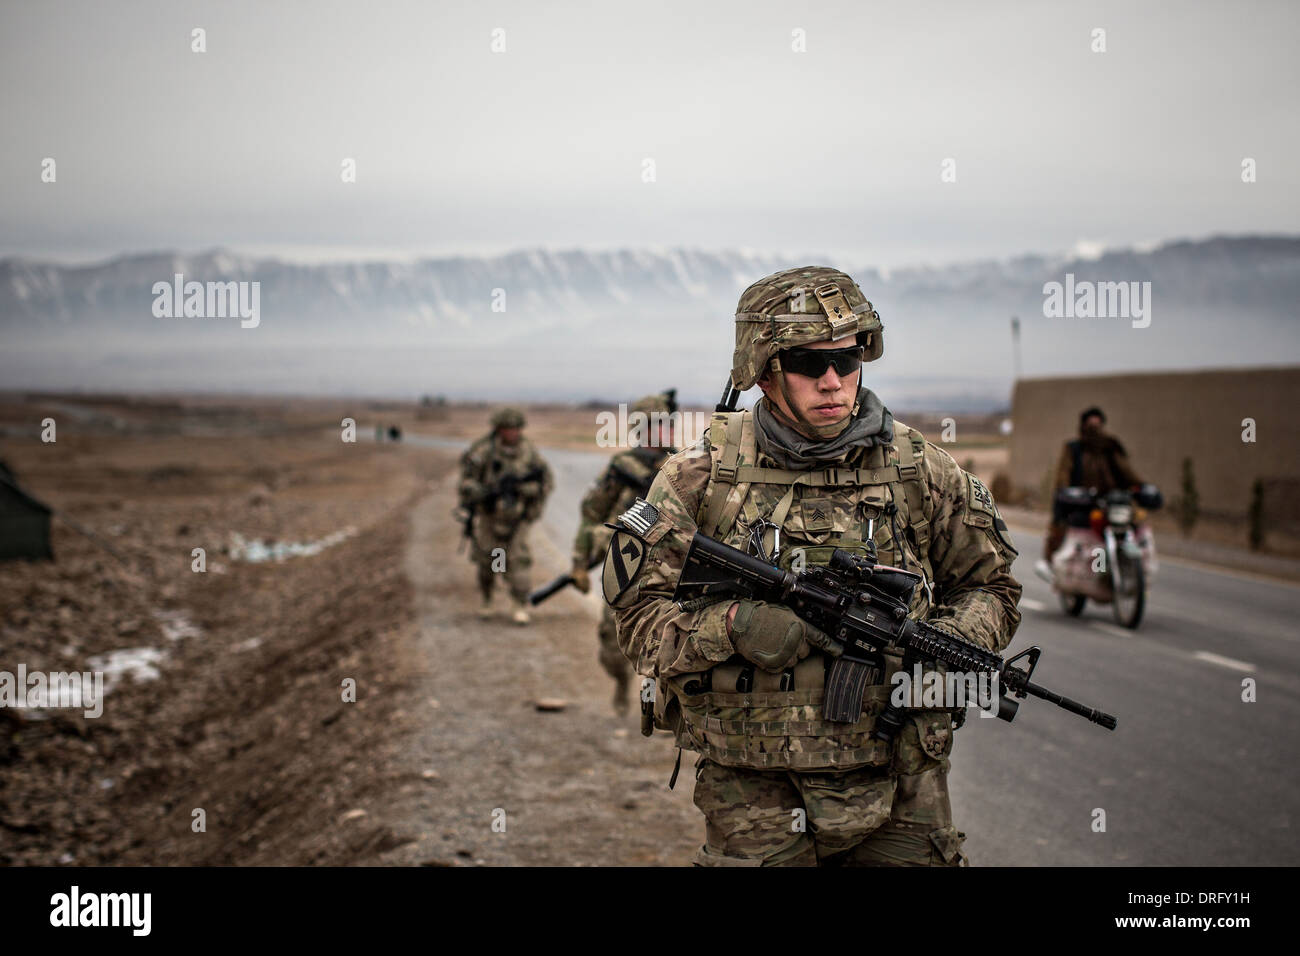 US Army soldiers with the 1st Cavalry Division conduct a a patrol January 12, 2014 in Tirin Kot, Uruzgan province, Stock Photo